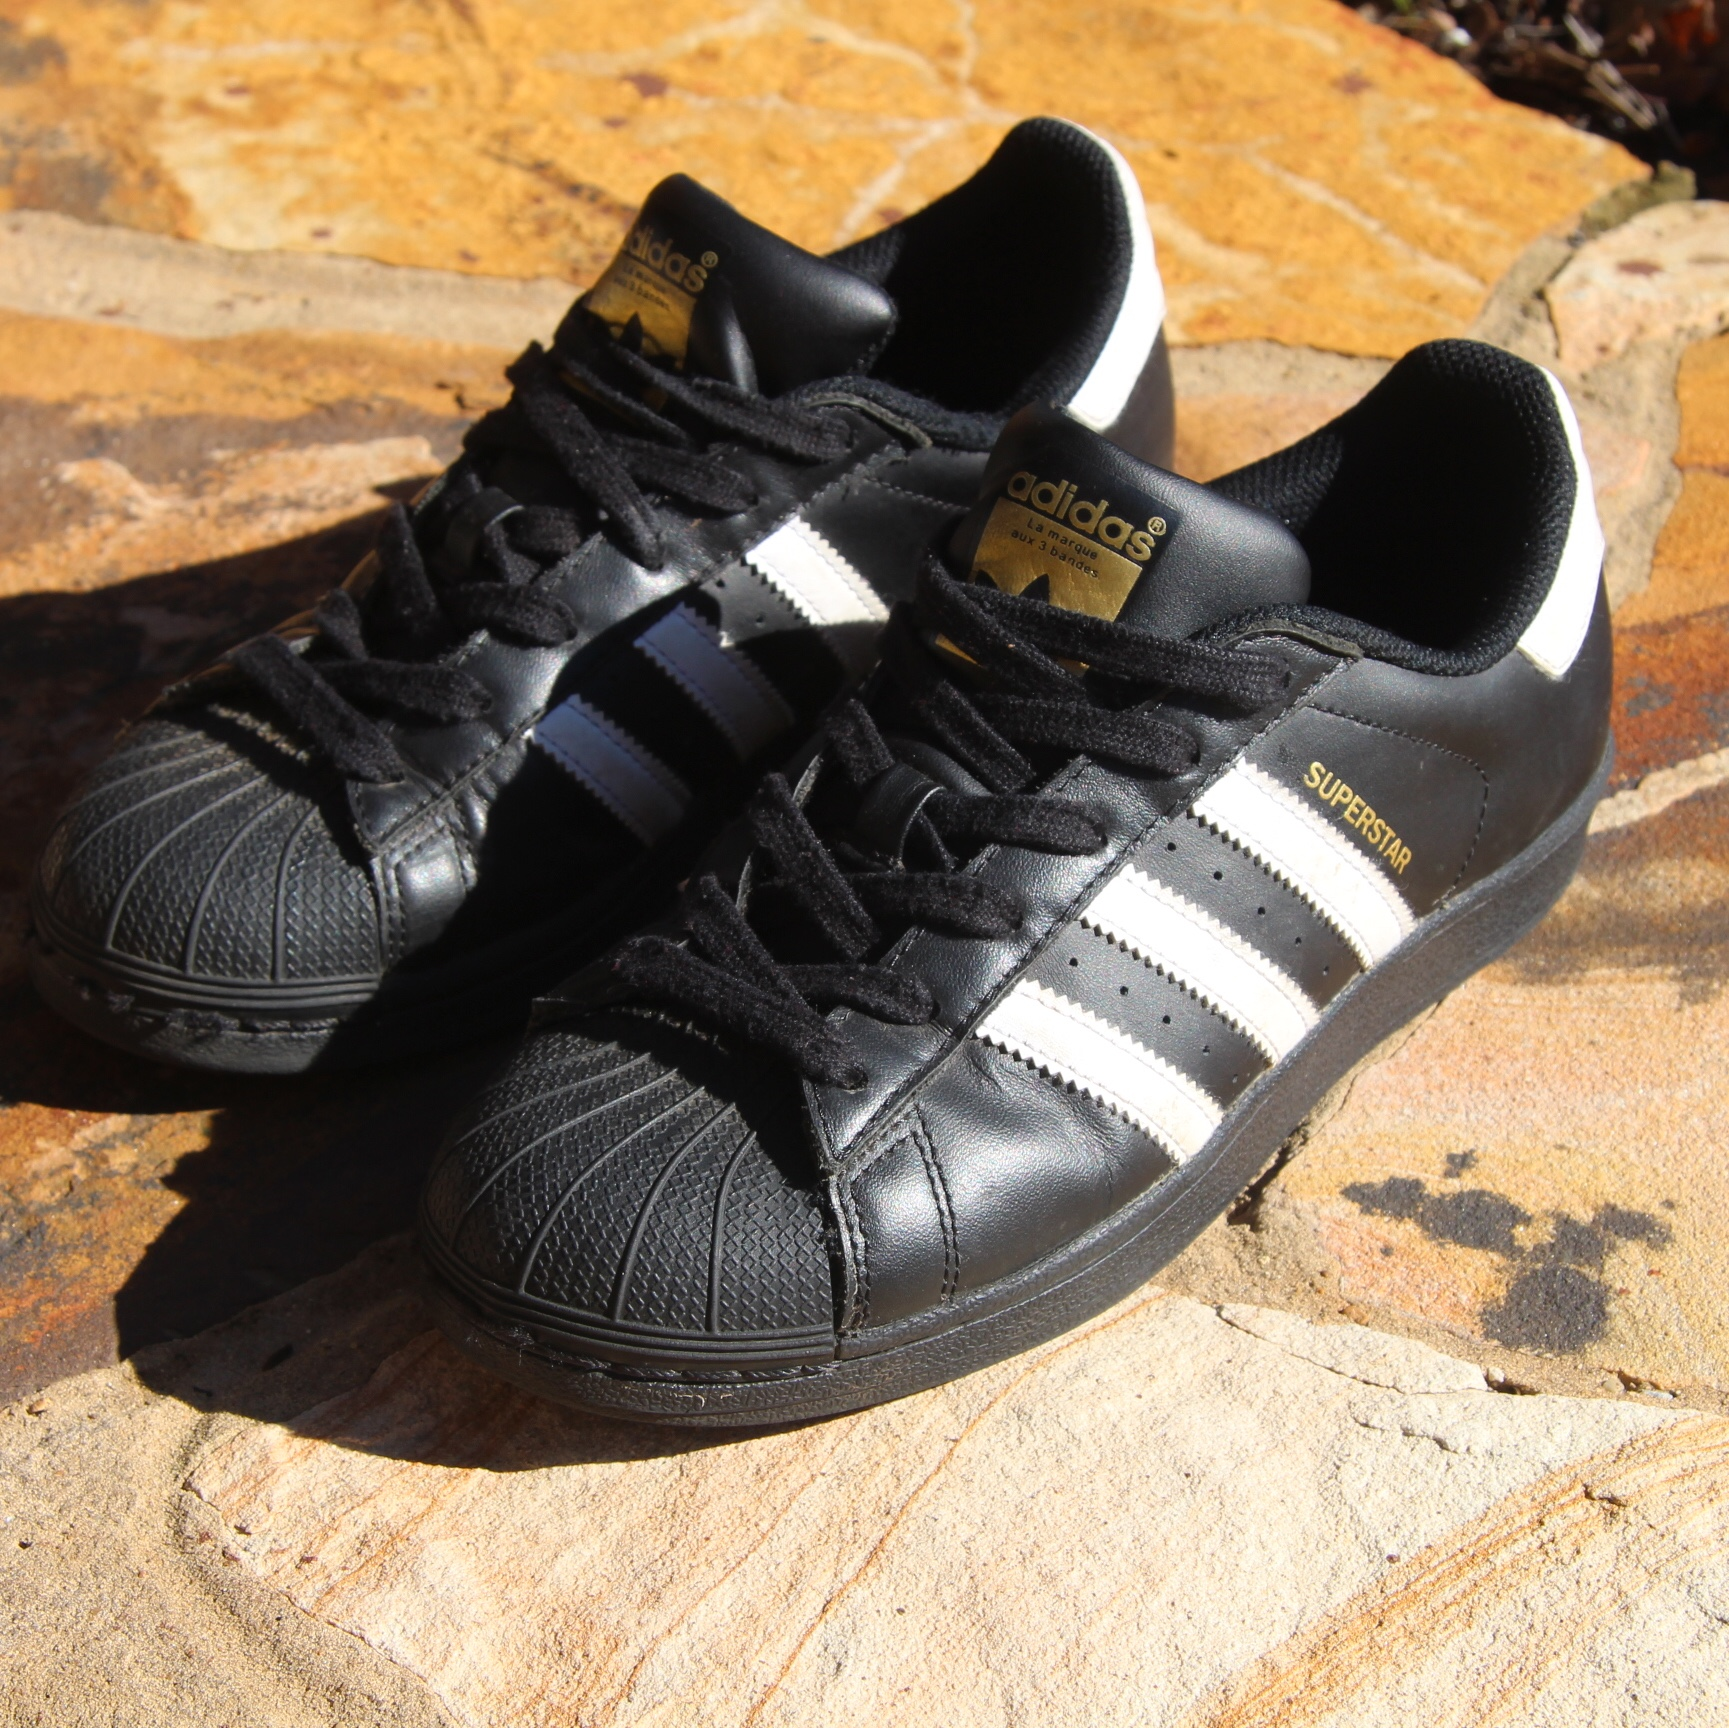 Adidas superstar sneakers all black with white Depop